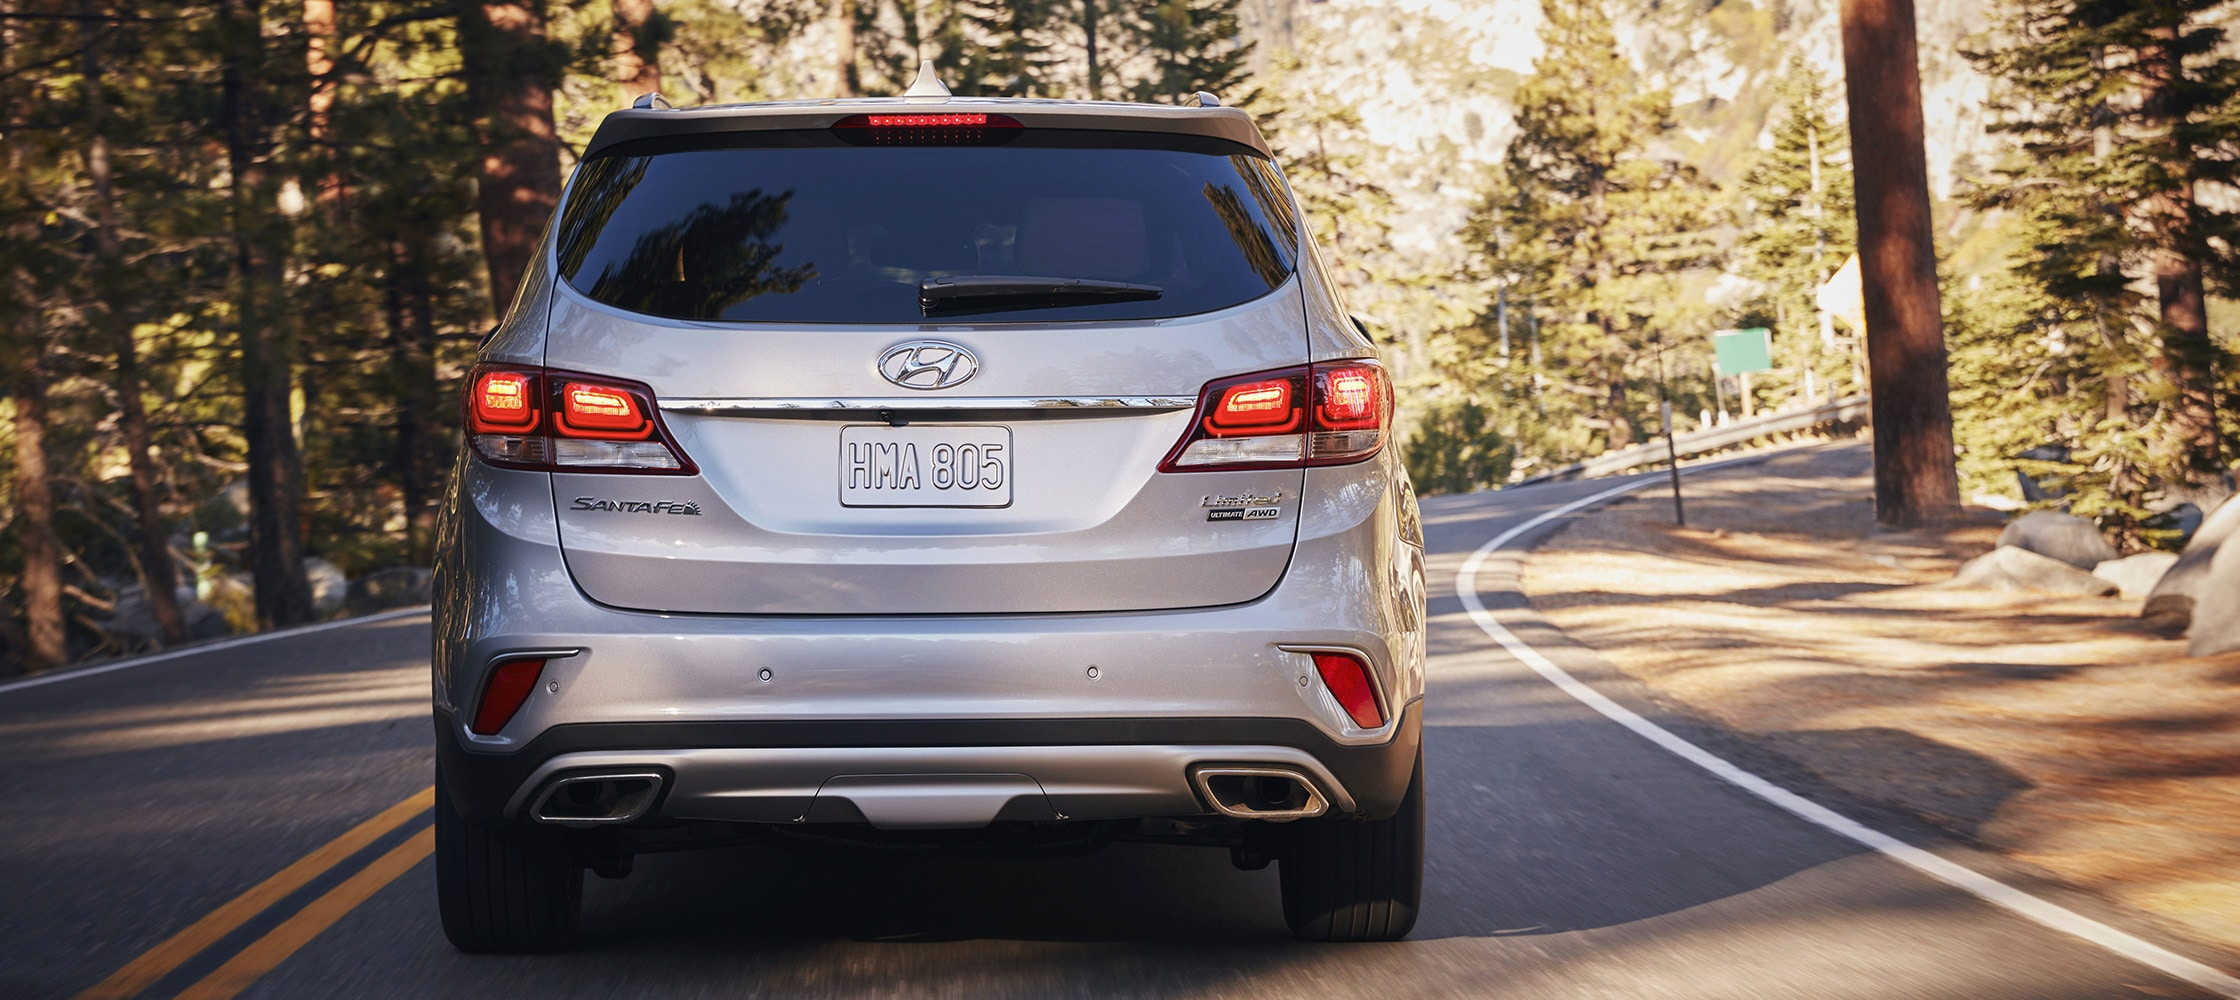 Exterior back photo of Hyundai Santa Fe XL 2017 sleek rear lights